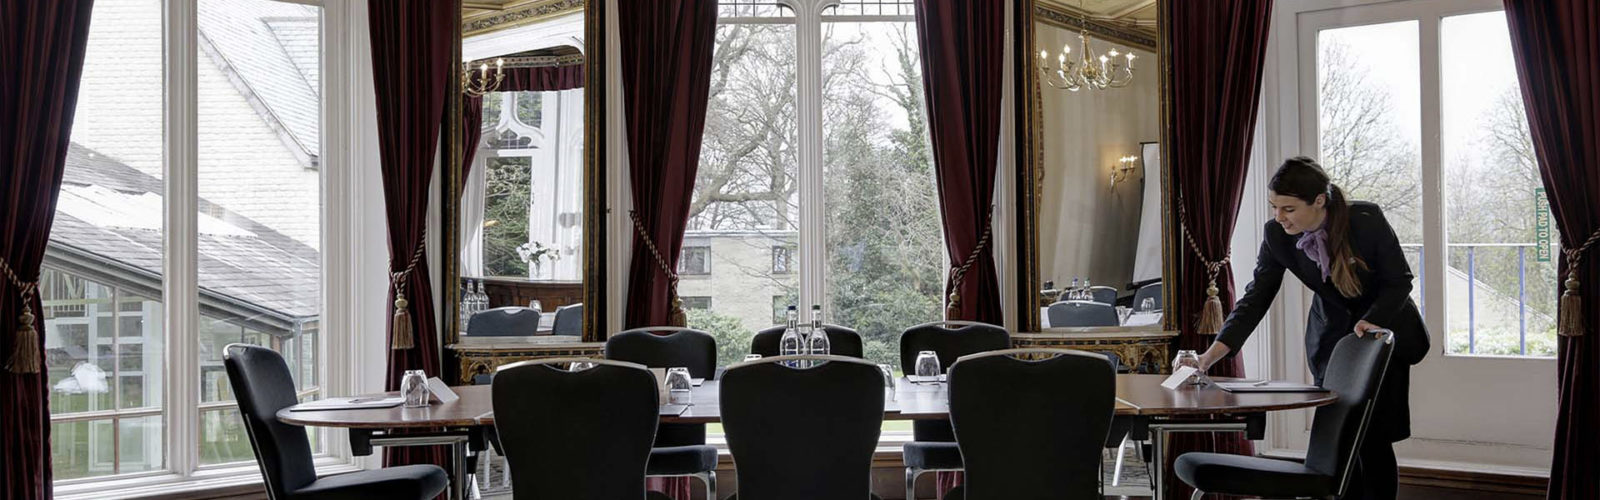 Meetings at Mercure Sheffield Kenwood Hall Hotel & Spa Vine Hotel Management